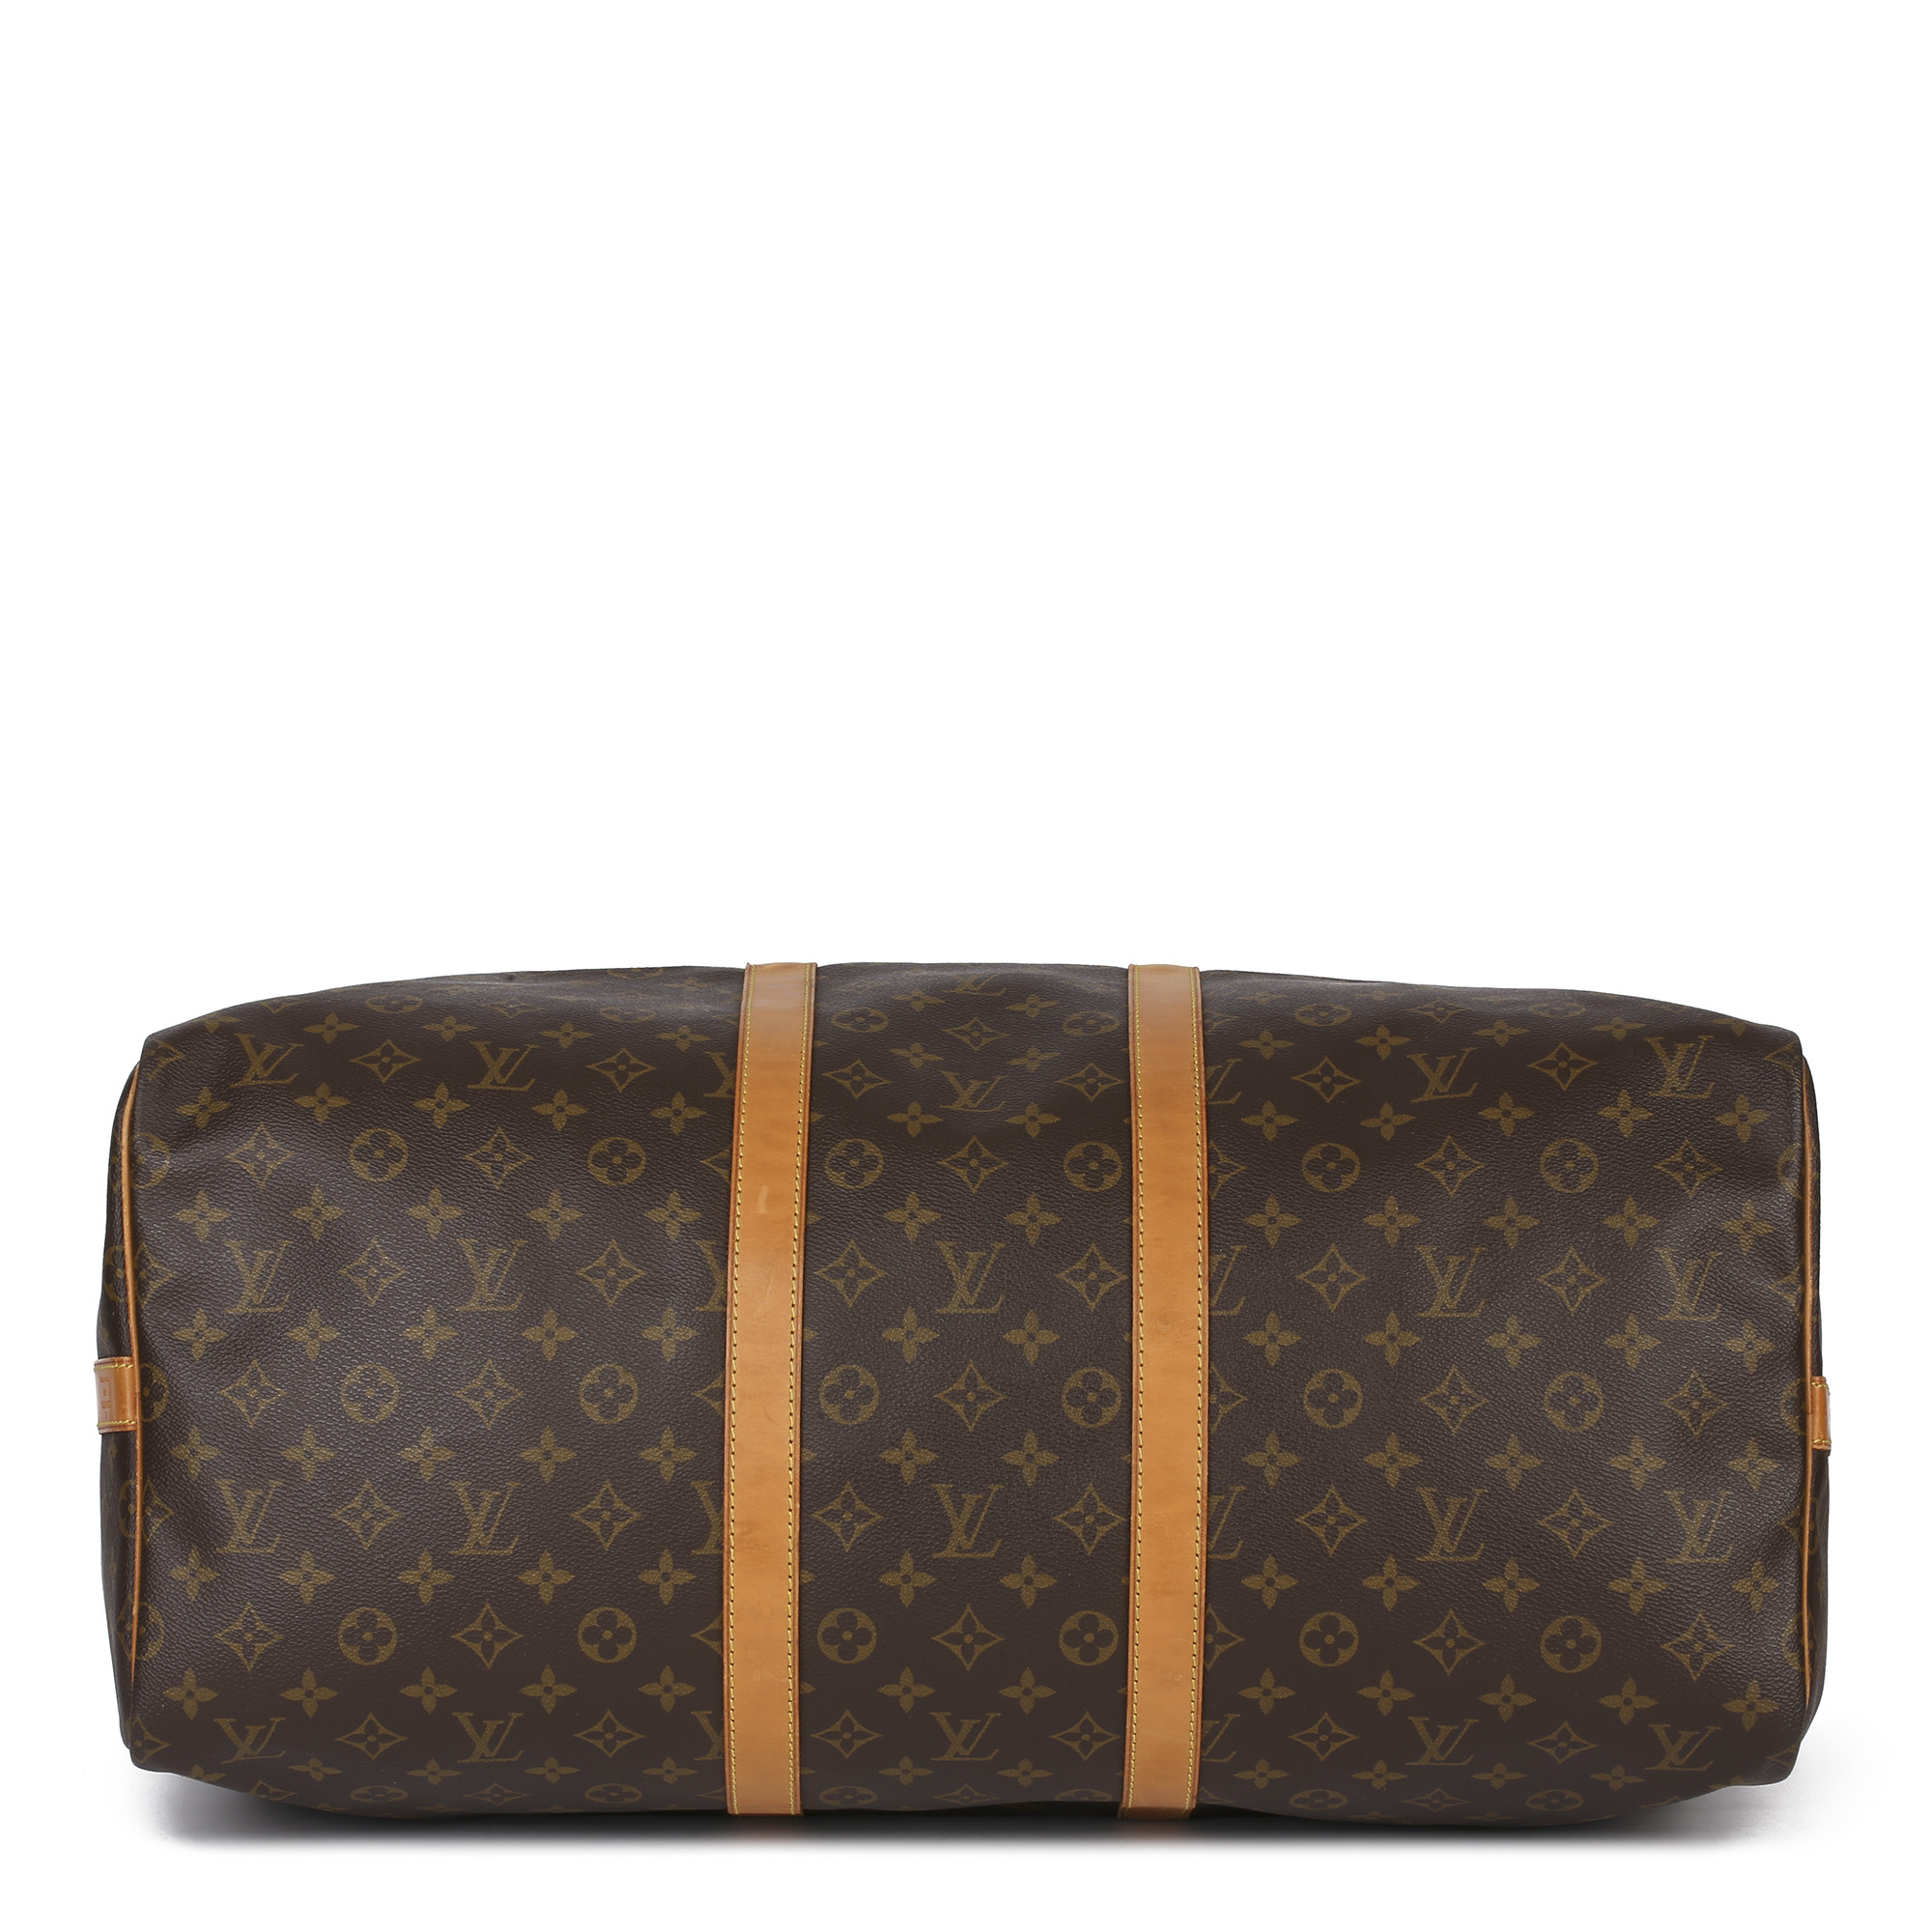 Louis Vuitton Brown Monogram Coated Canvas & Vachetta Leather Vintage Keepall 55 Bandoulire - Image 7 of 10